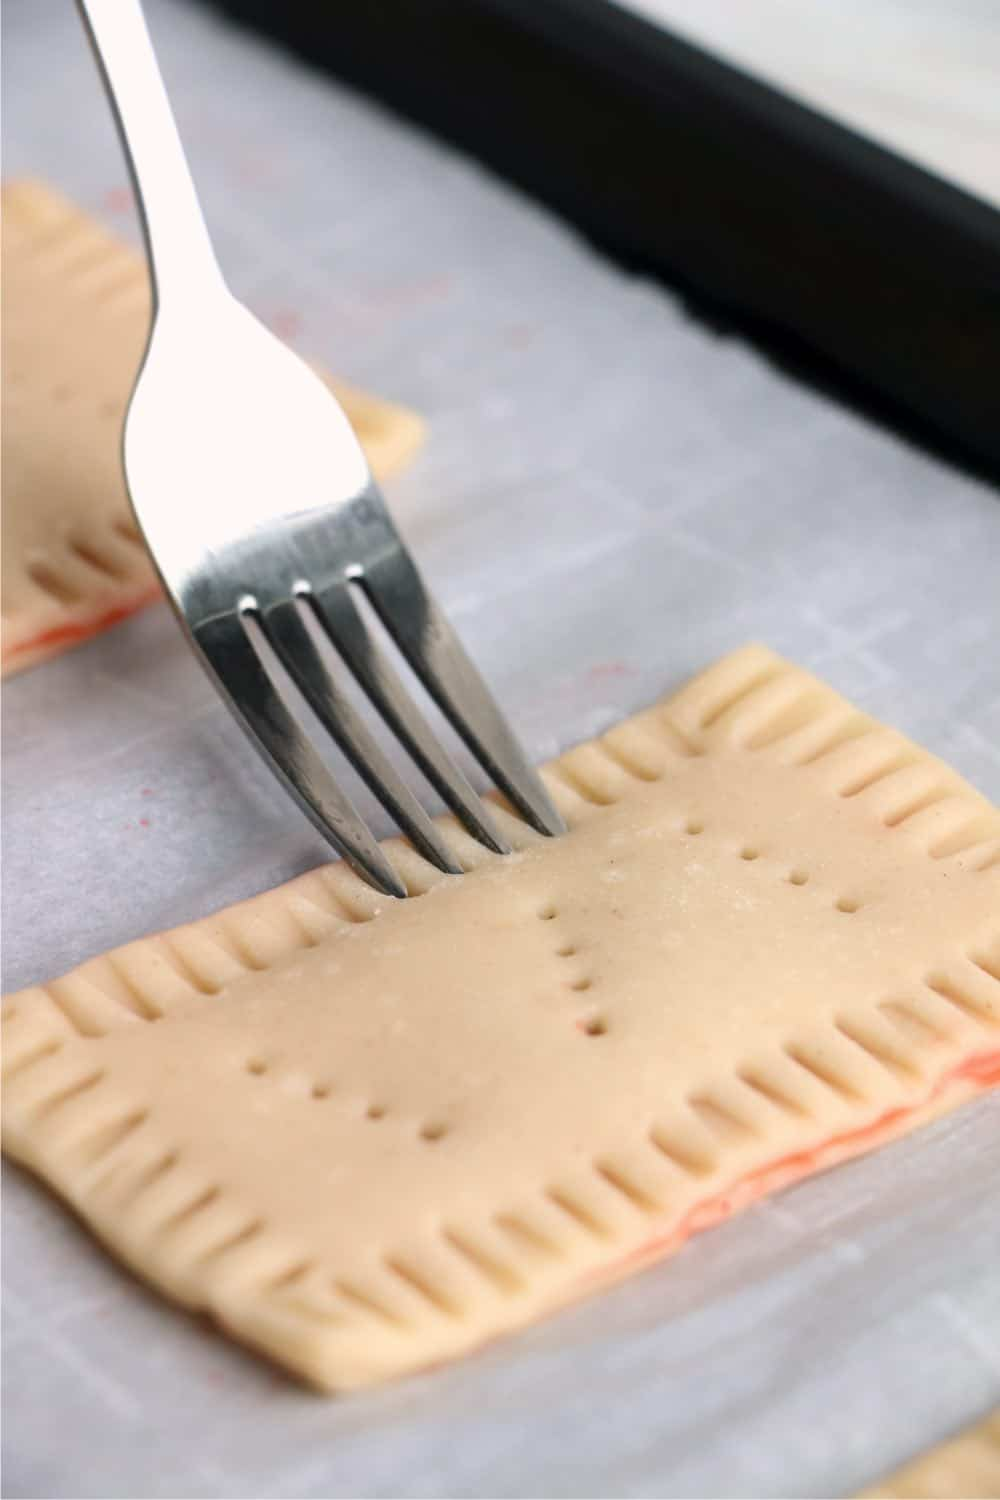 use a fork to poke into the center of each pop tart